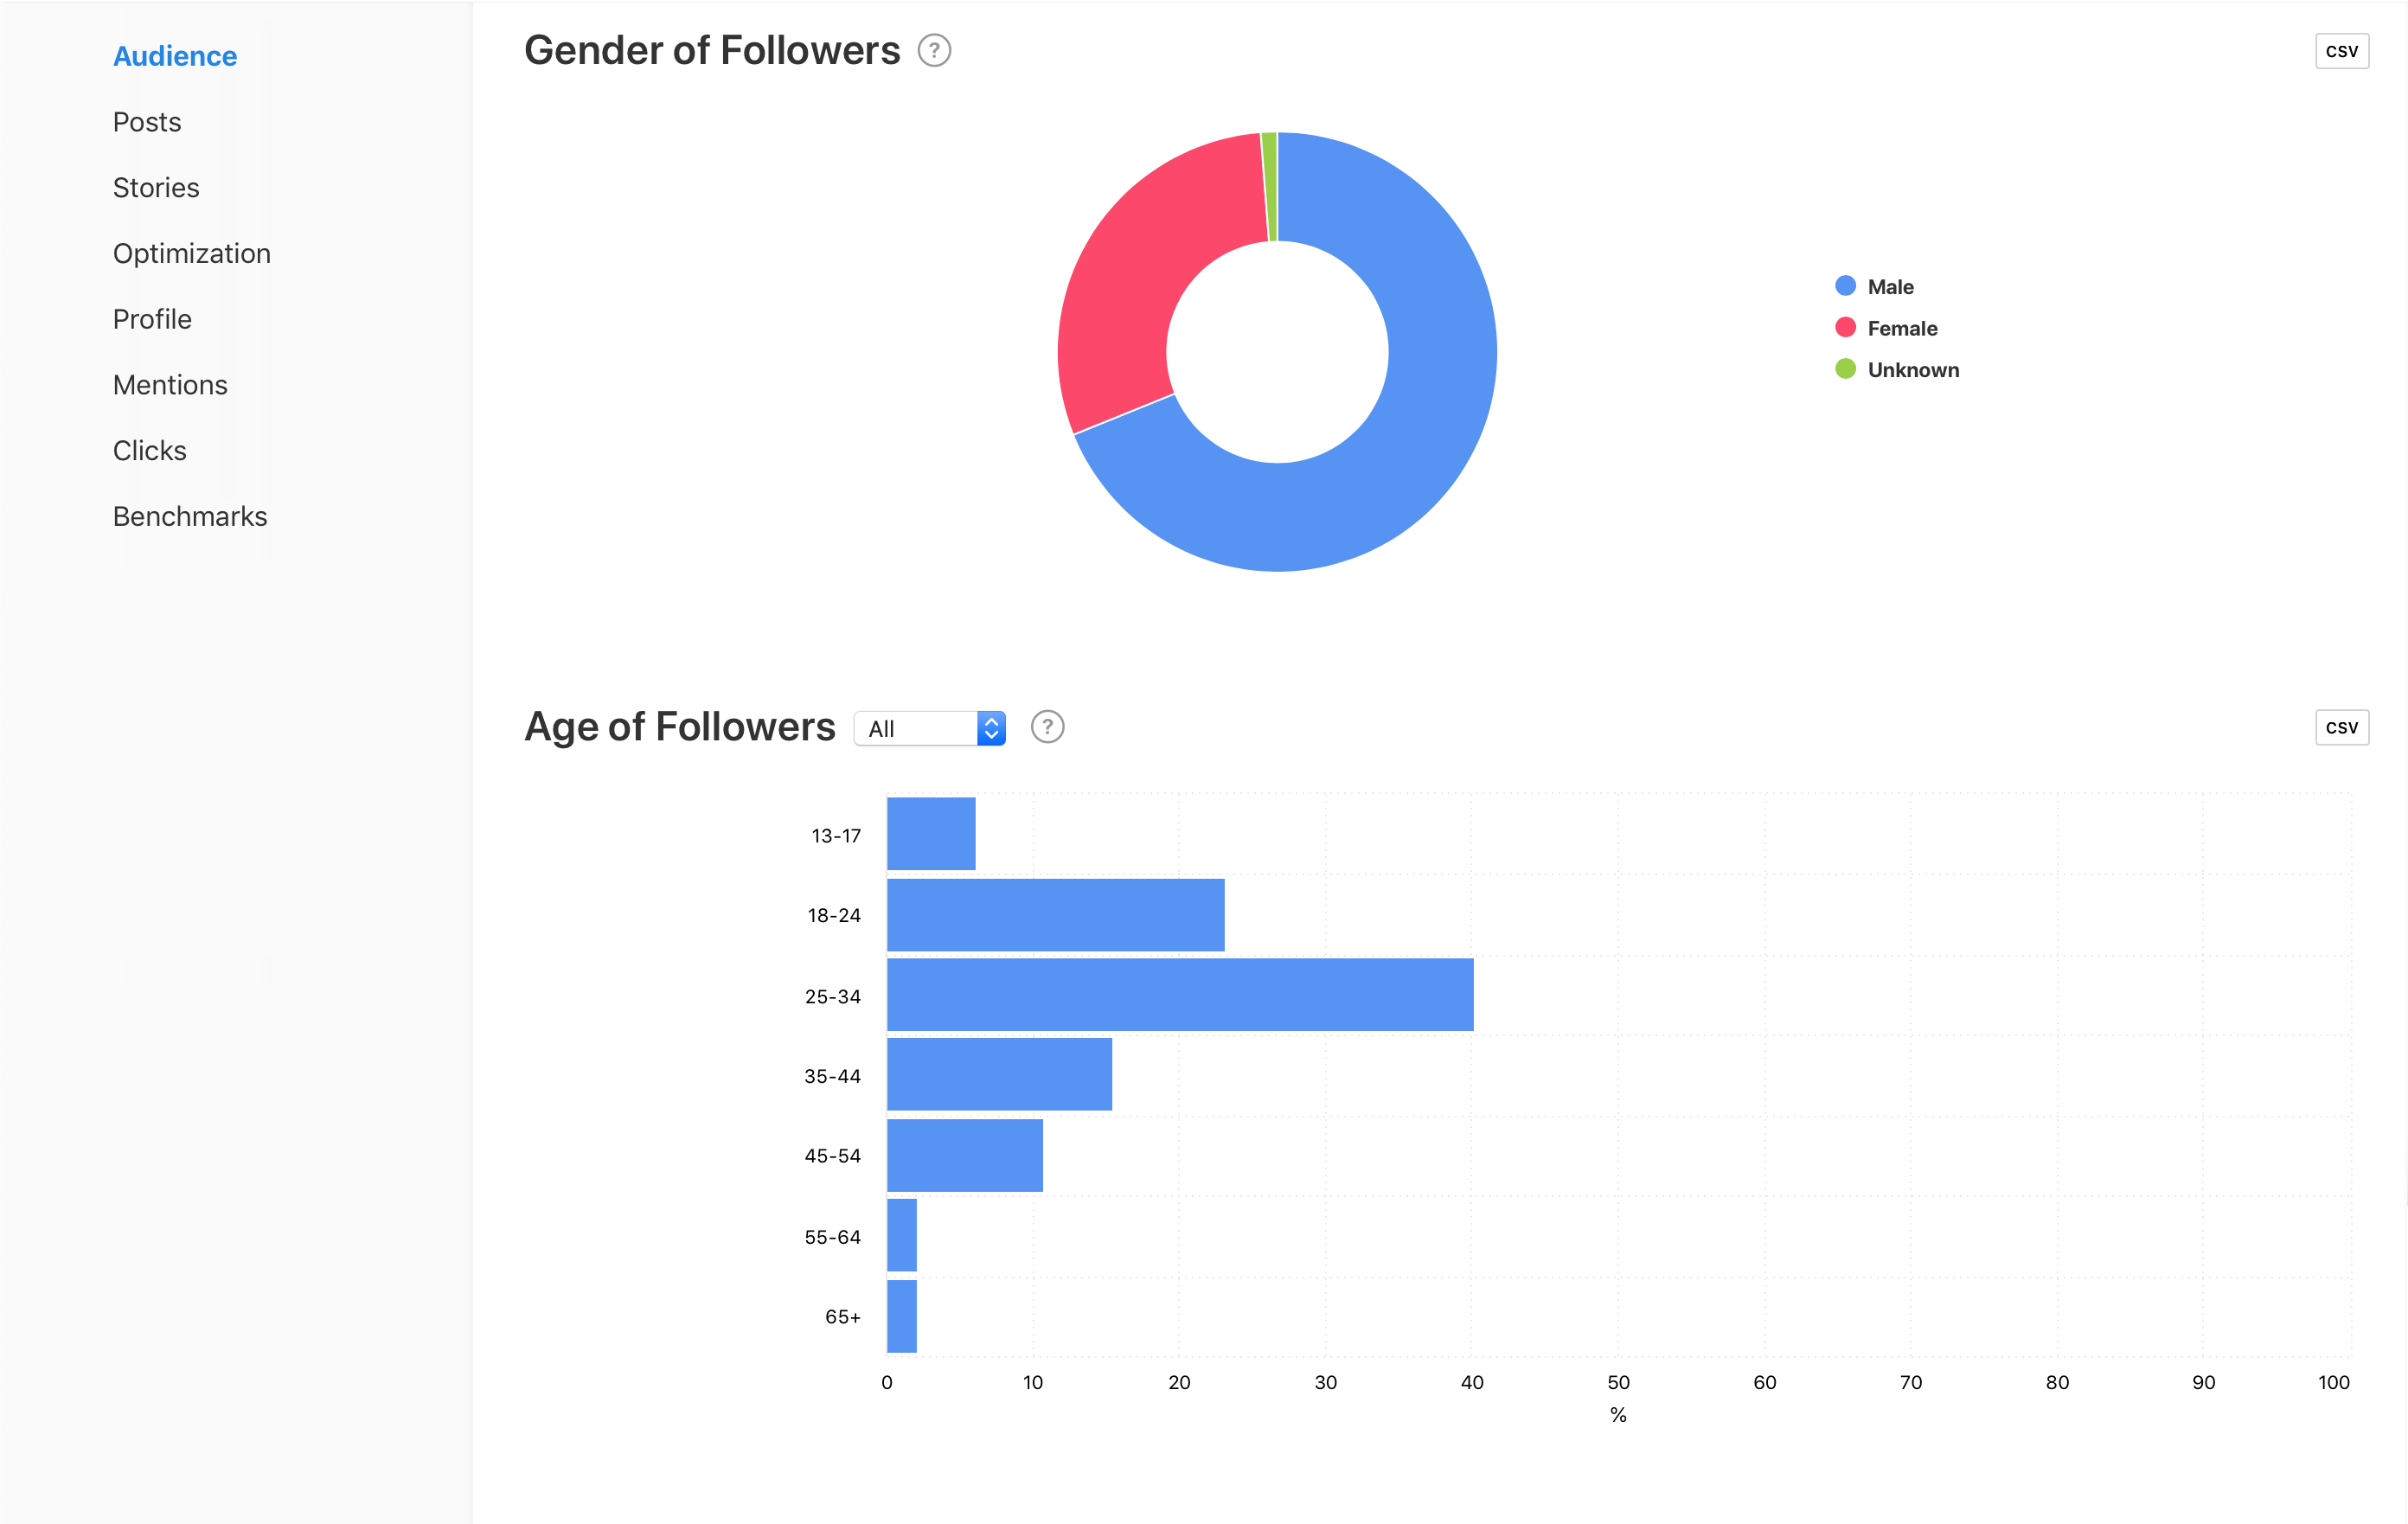 Audience metrics for Gender of Followers and Age of Followers, graphs by Minter.io